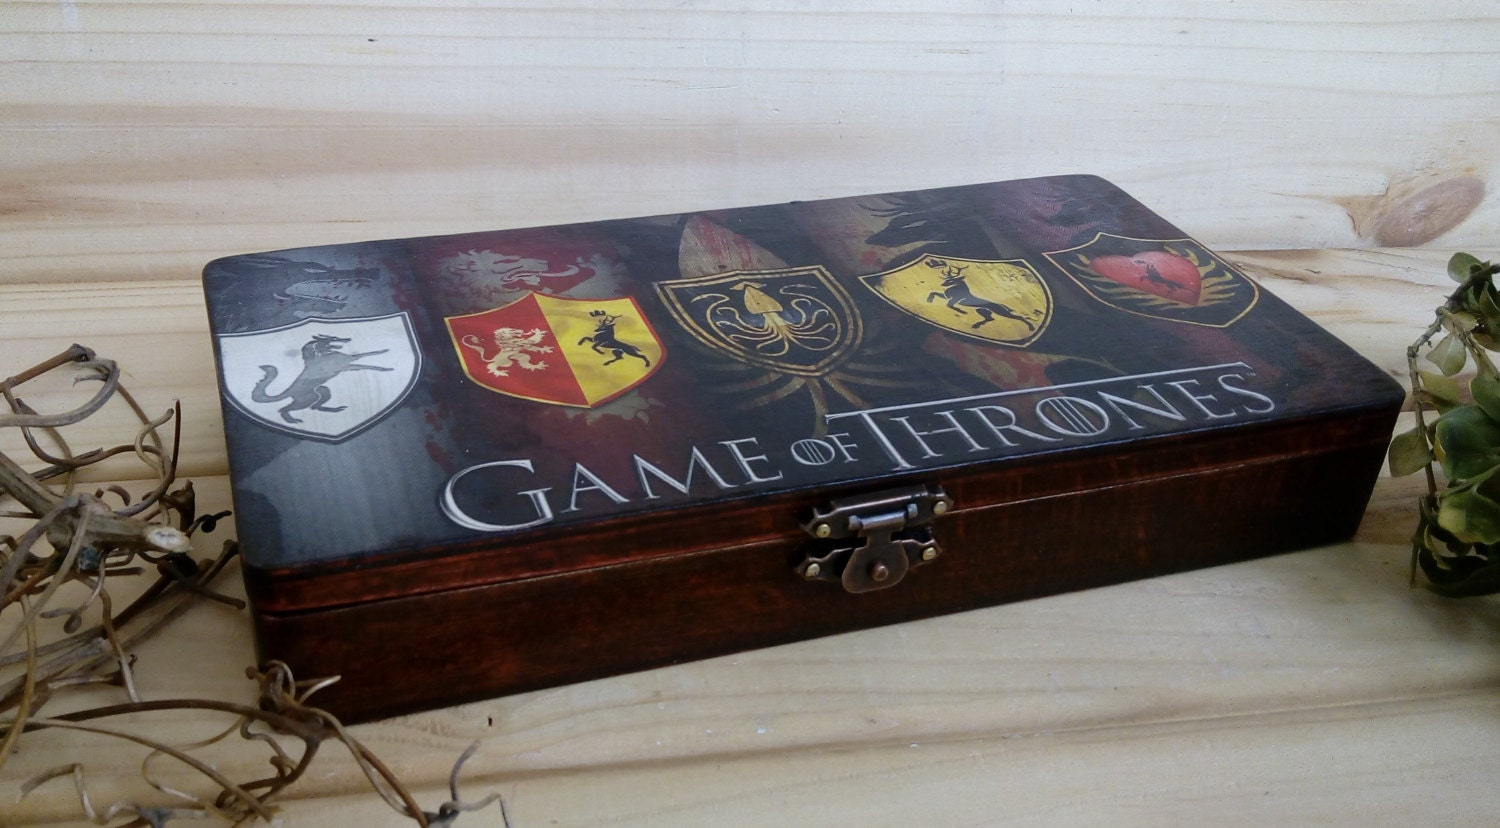 Game of thrones box gift for men wooden box money box gift for for Game of thrones gifts for men